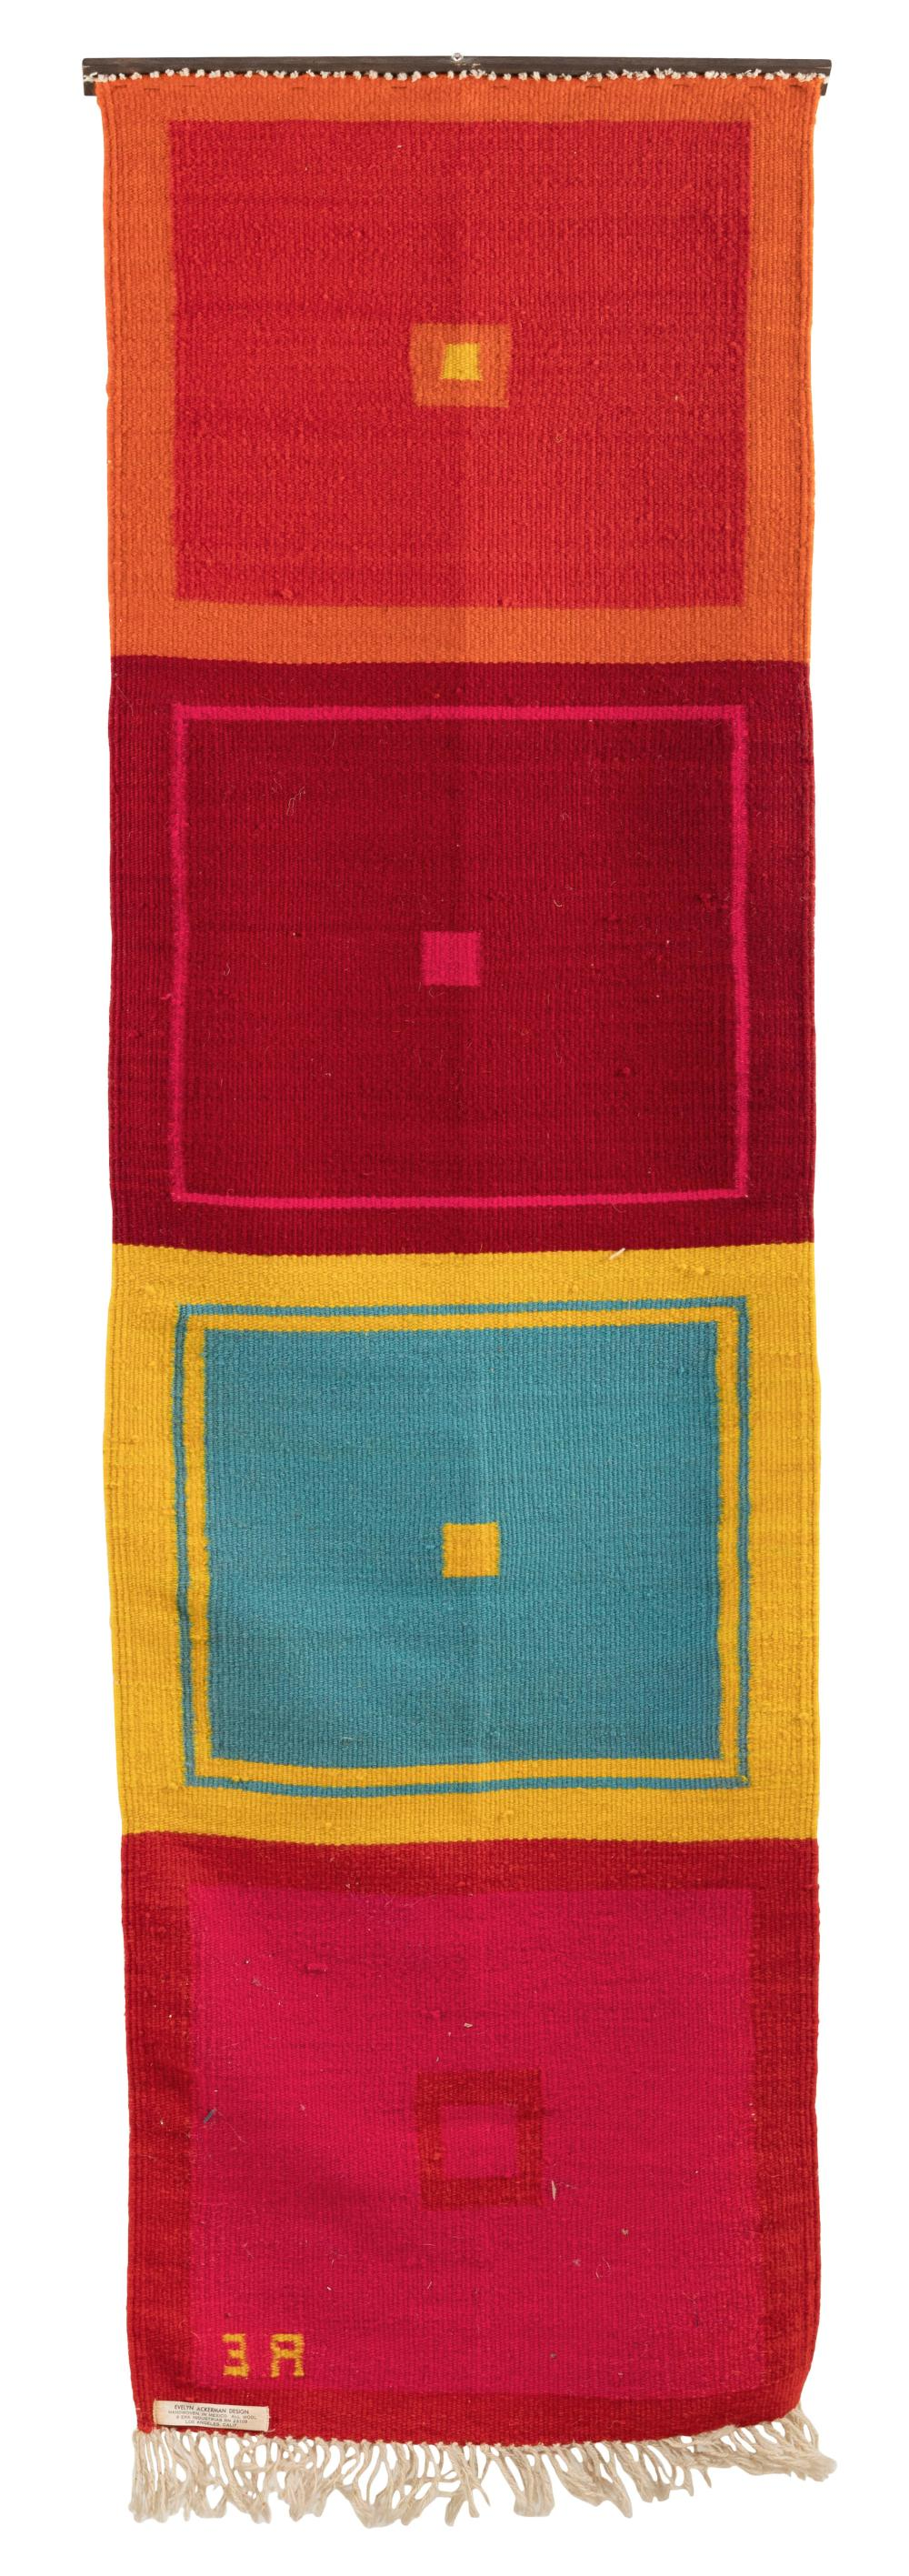 """EVELYN ACKERMAN FOR ERA INDUSTRIES (California/Michigan, 1924-2012), Geometric tapestry, Mexico, 1960s., Woven wool mounted to a wooden rod, 68"""" x 18.5""""."""